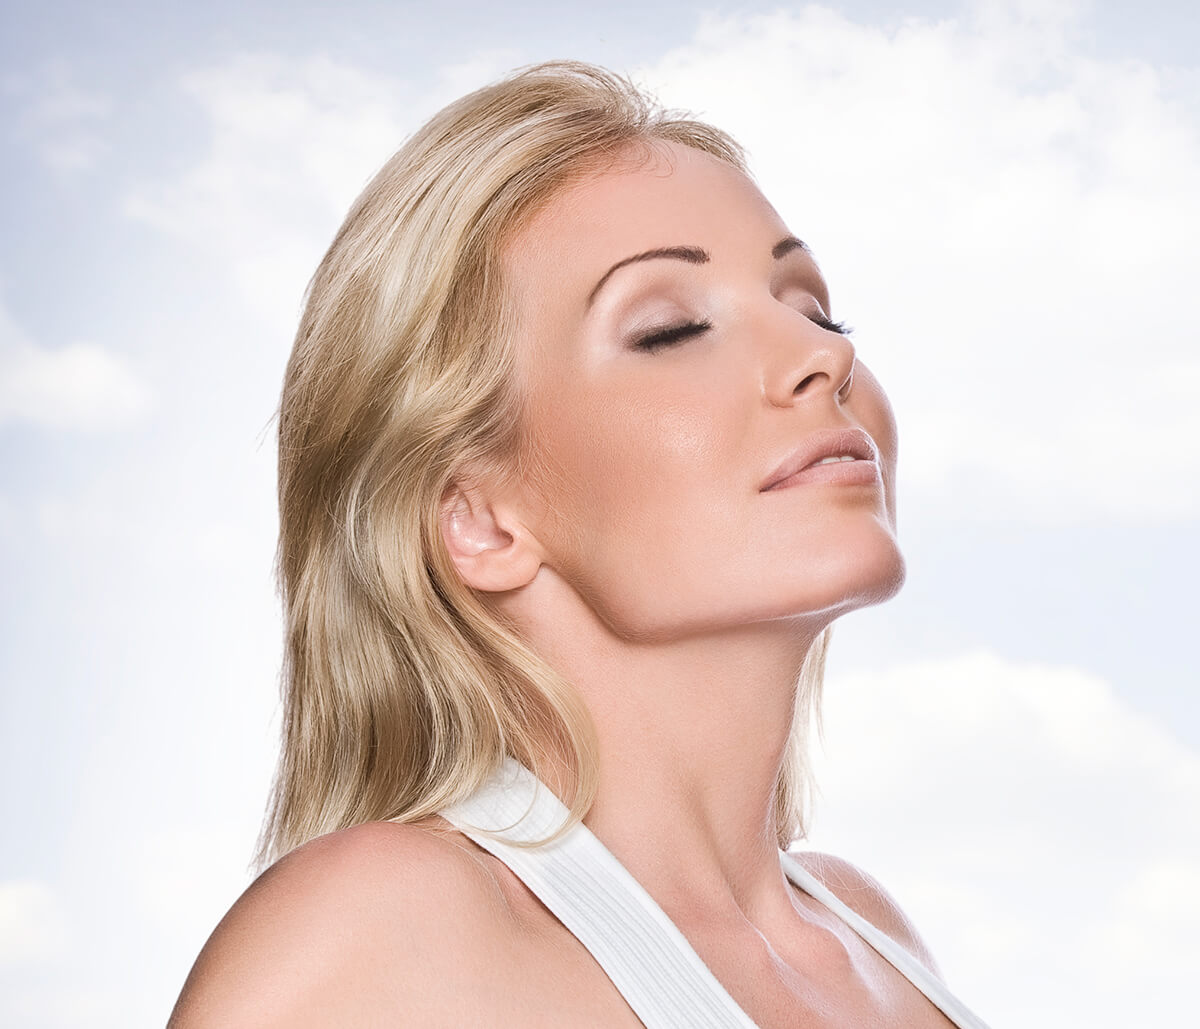 The Latest News on how to Get Rid of a Double Chin with Dr. Adam Maddox at Thrive